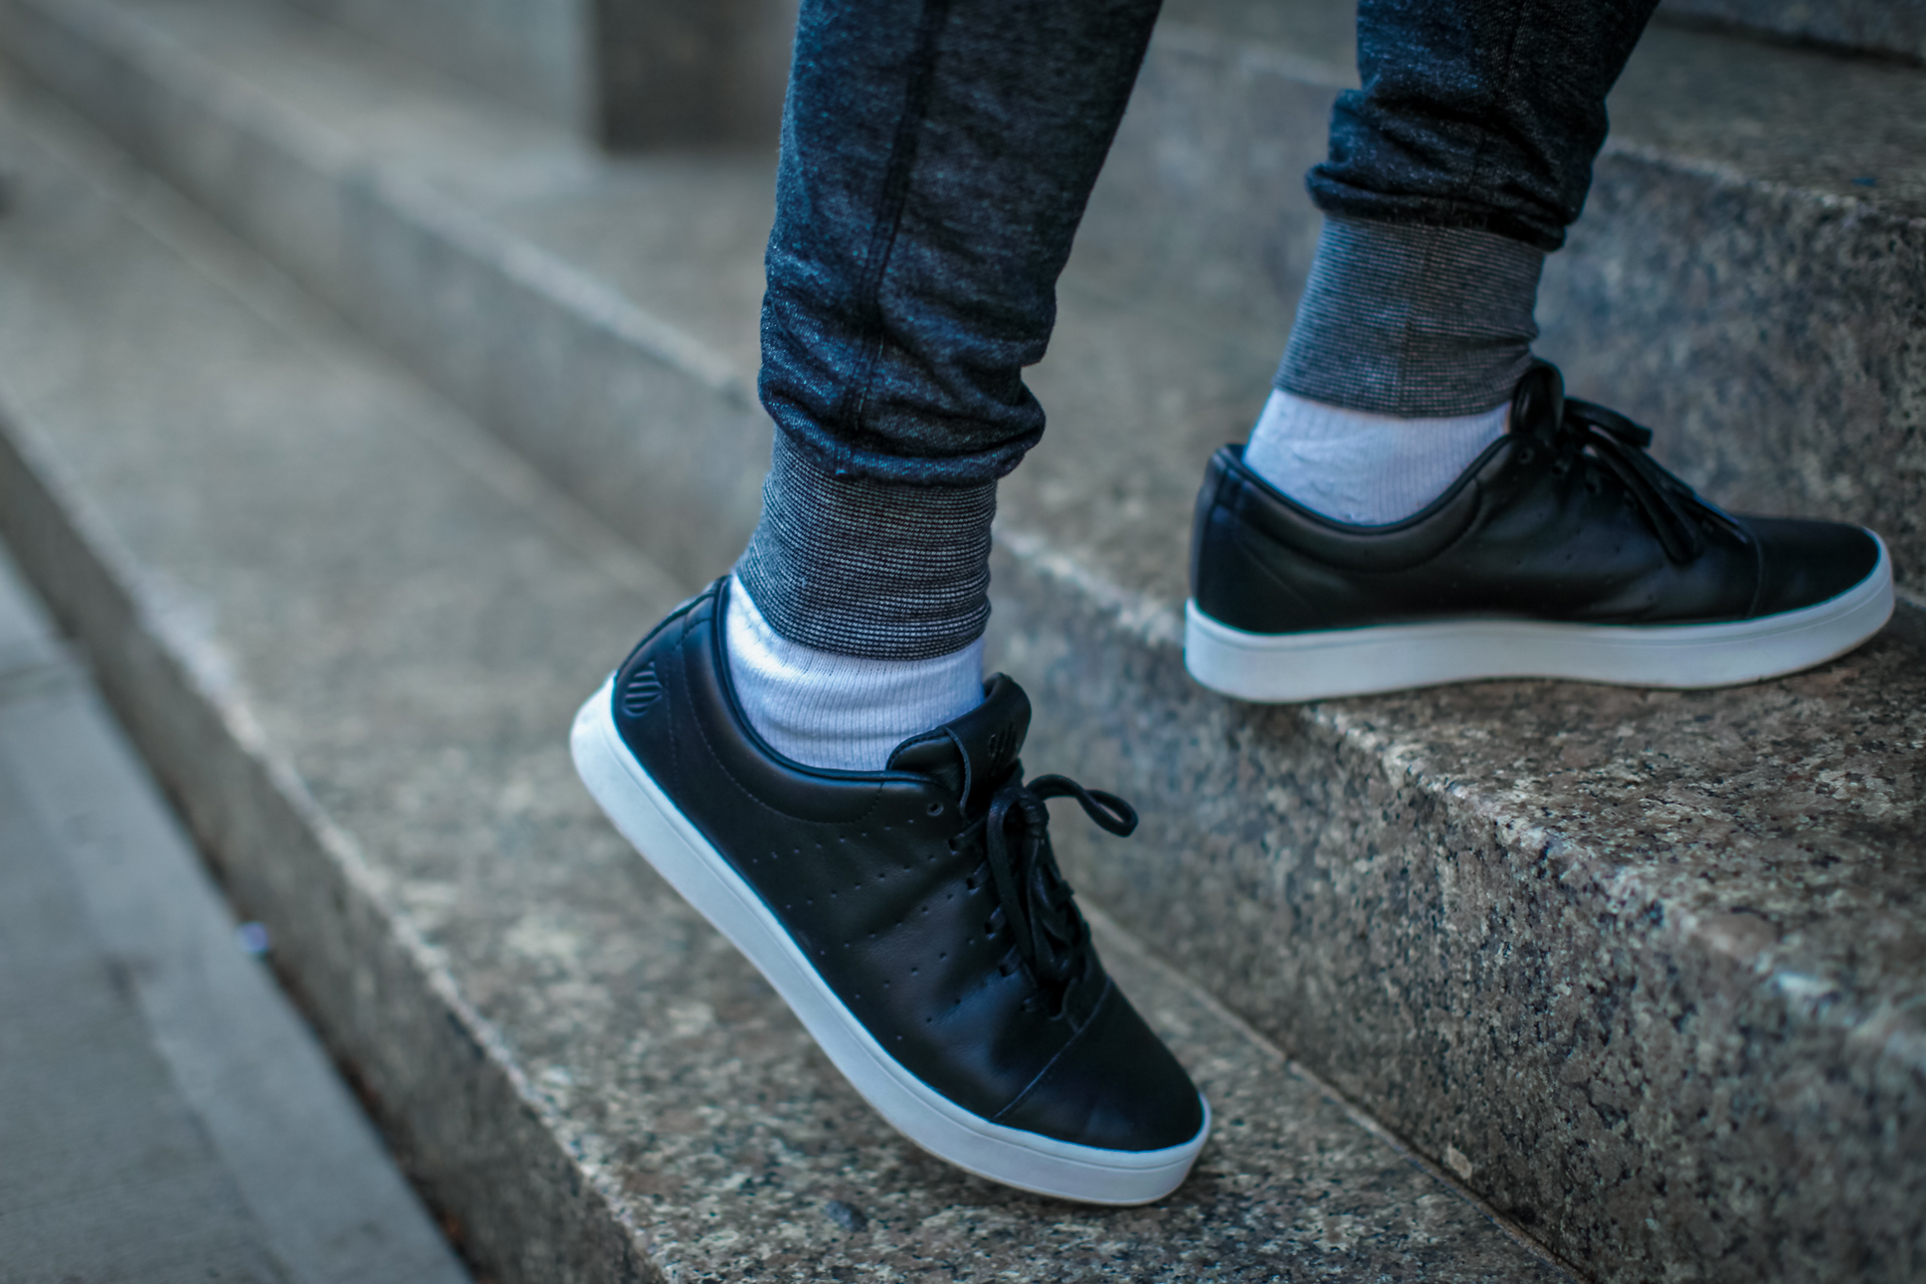 black sneakers with a white sole